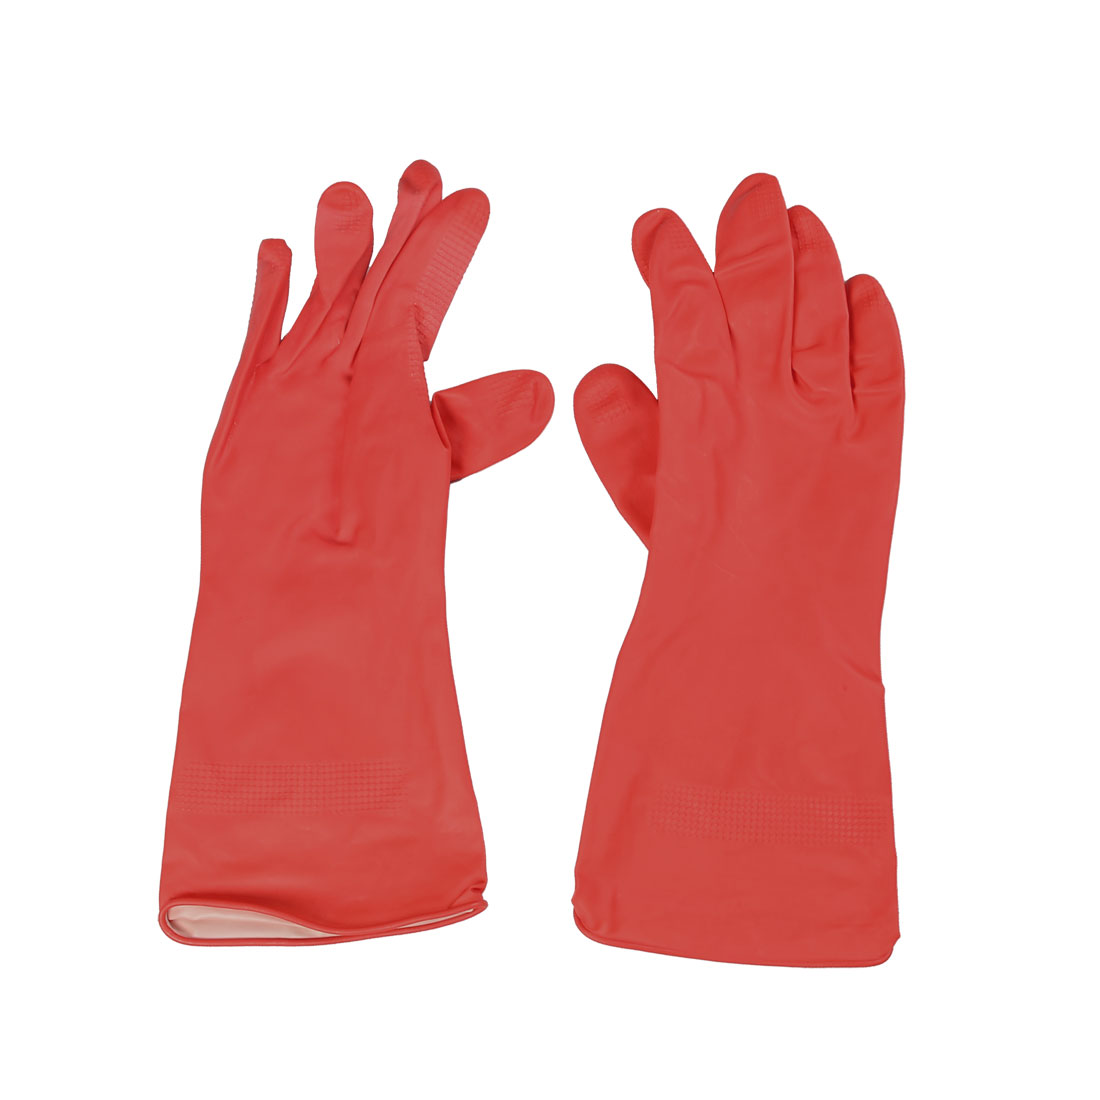 "Industry Household 11"" Length Red Latex Full Finger Working Gloves"